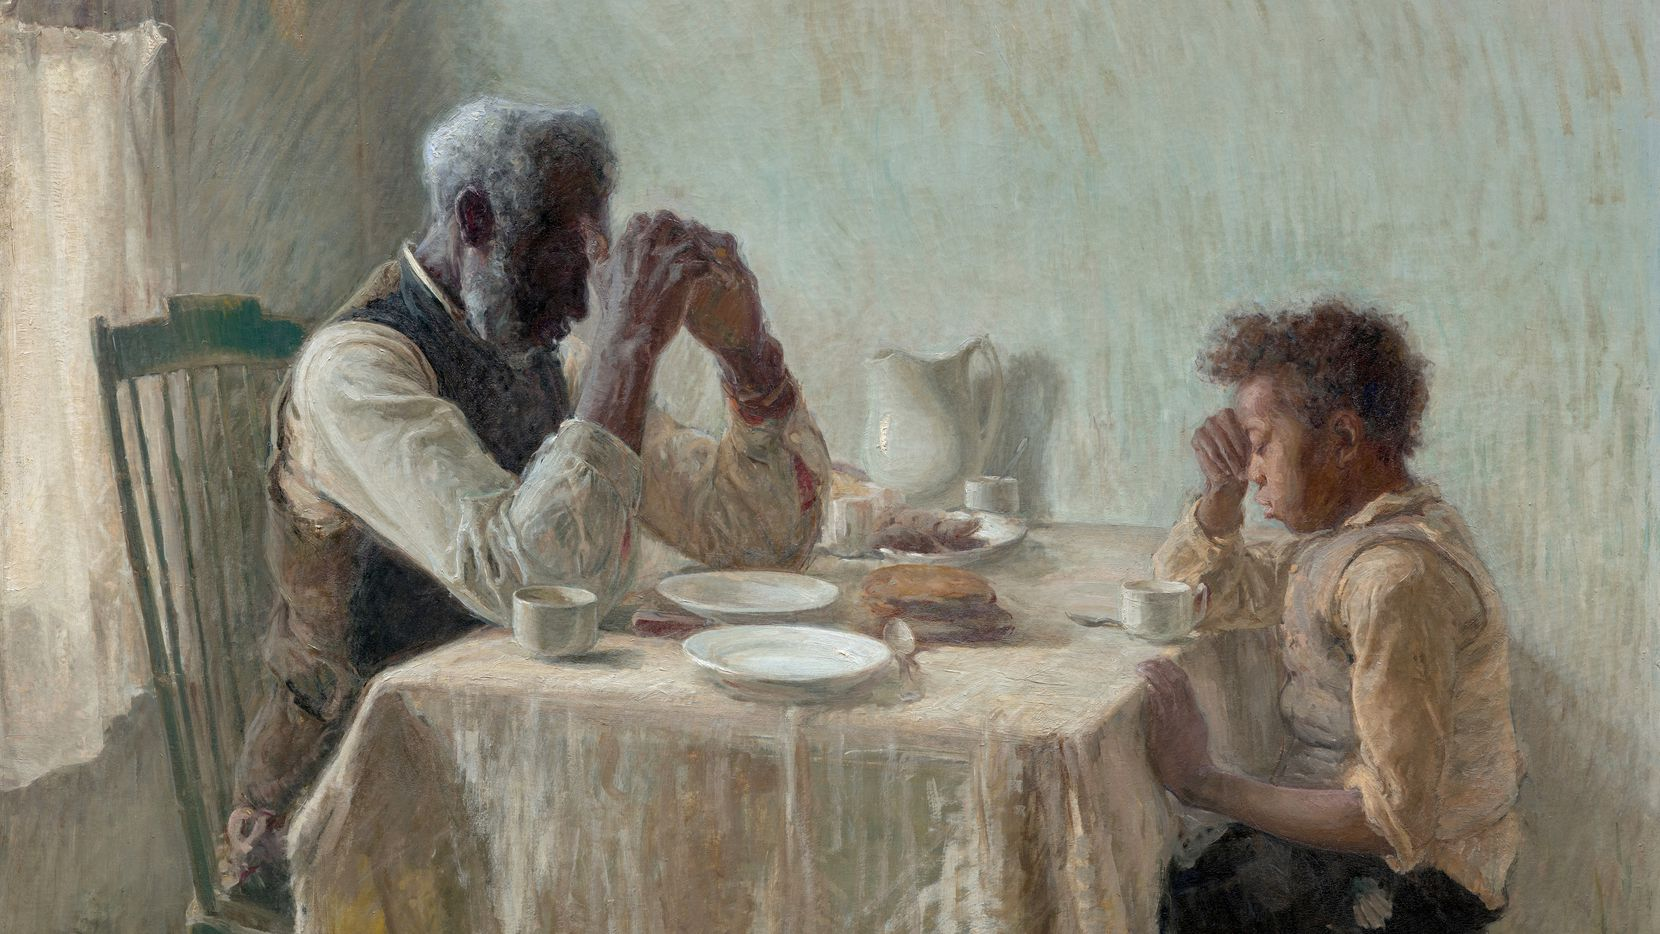 """Henry Ossawa Tanner's """"The Thankful Poor,"""" from 1894, shows a young boy and his grandfather with their heads bowed in prayer over a humble meal. Tanner's two-painting exhibition continues through Jan. 2 at the Dallas Museum of Art. (Dallas Museum of Art)"""